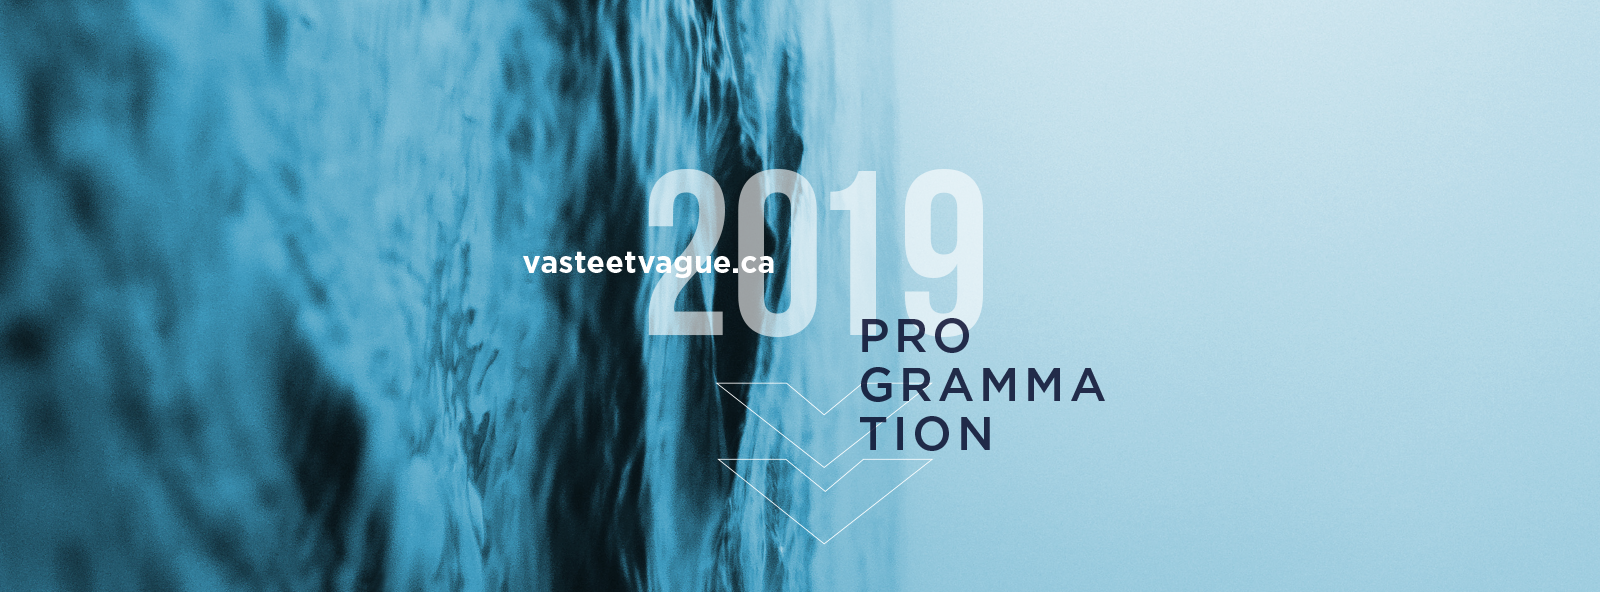 Programmation 2019 | Centre d'artistes Vaste et Vague